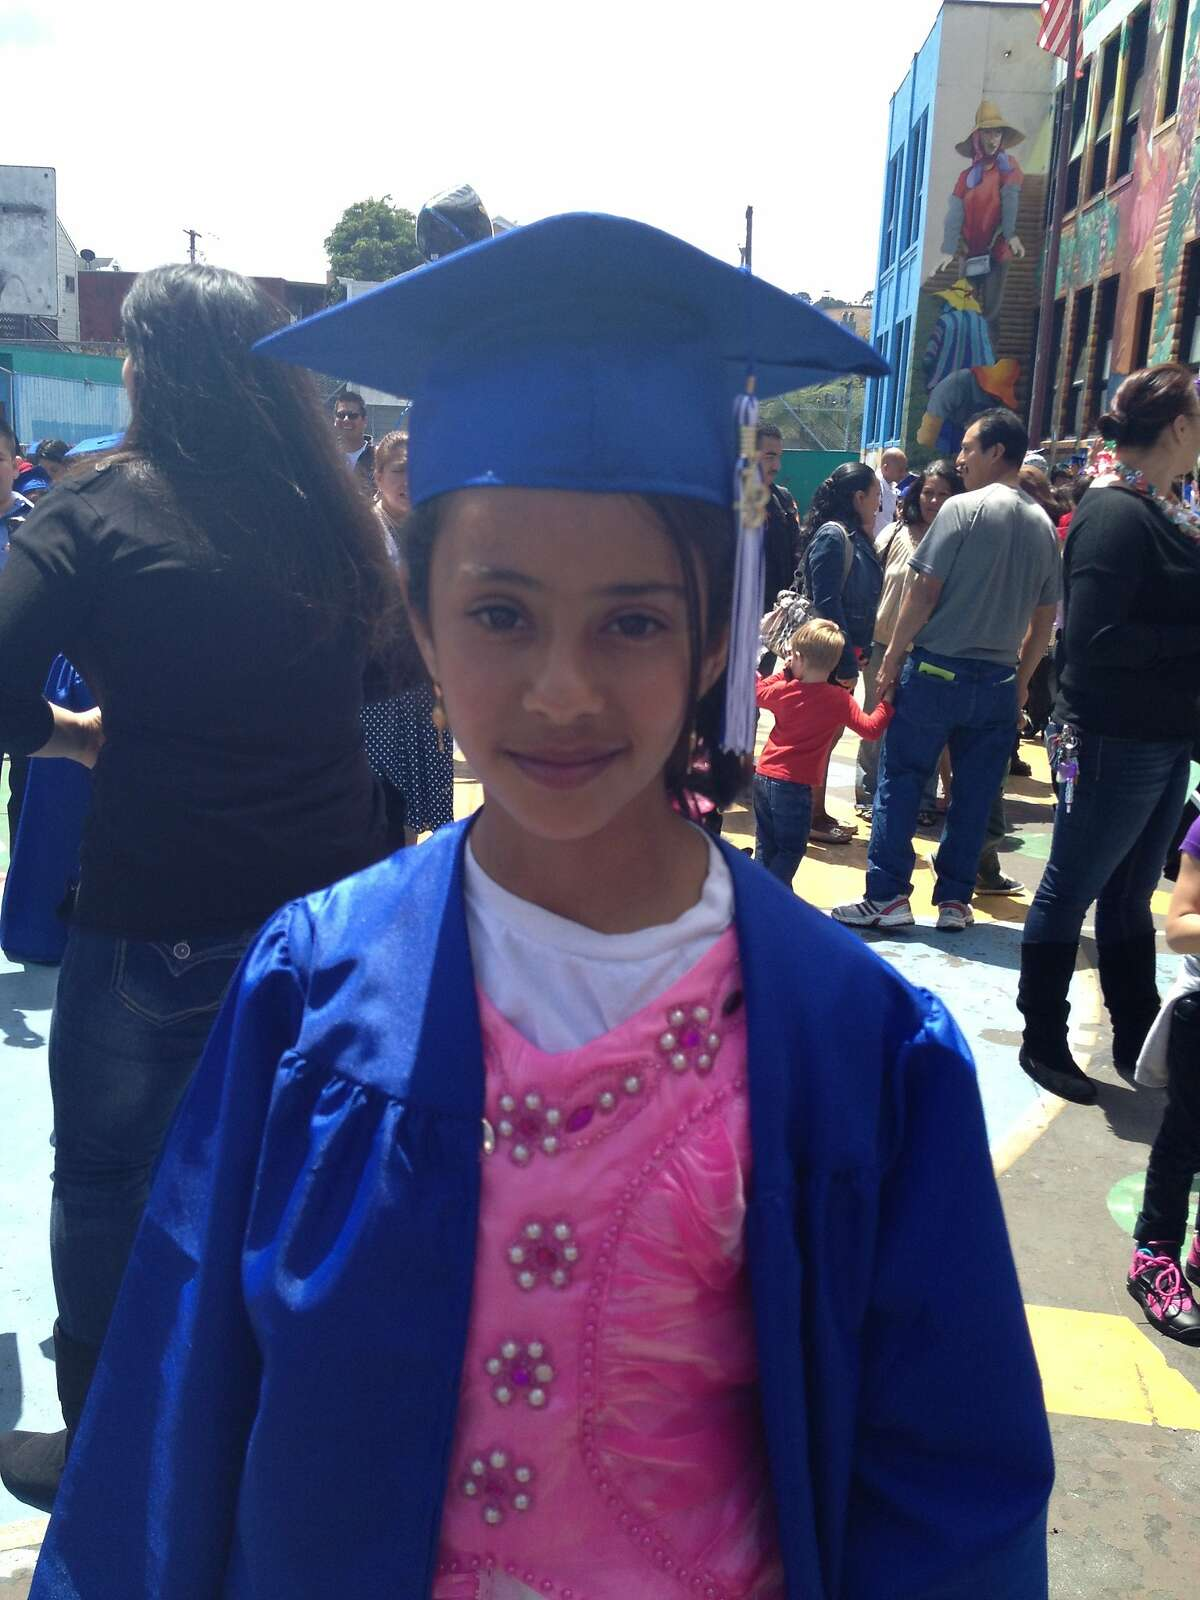 Amal Shaibi, 13, died at San Francisco General Hospital Wednesday from injuries sustained in a March 11 fire at her home in San Francisco's Mission District. A family friend described her as an intelligent, sweet and kind girl.